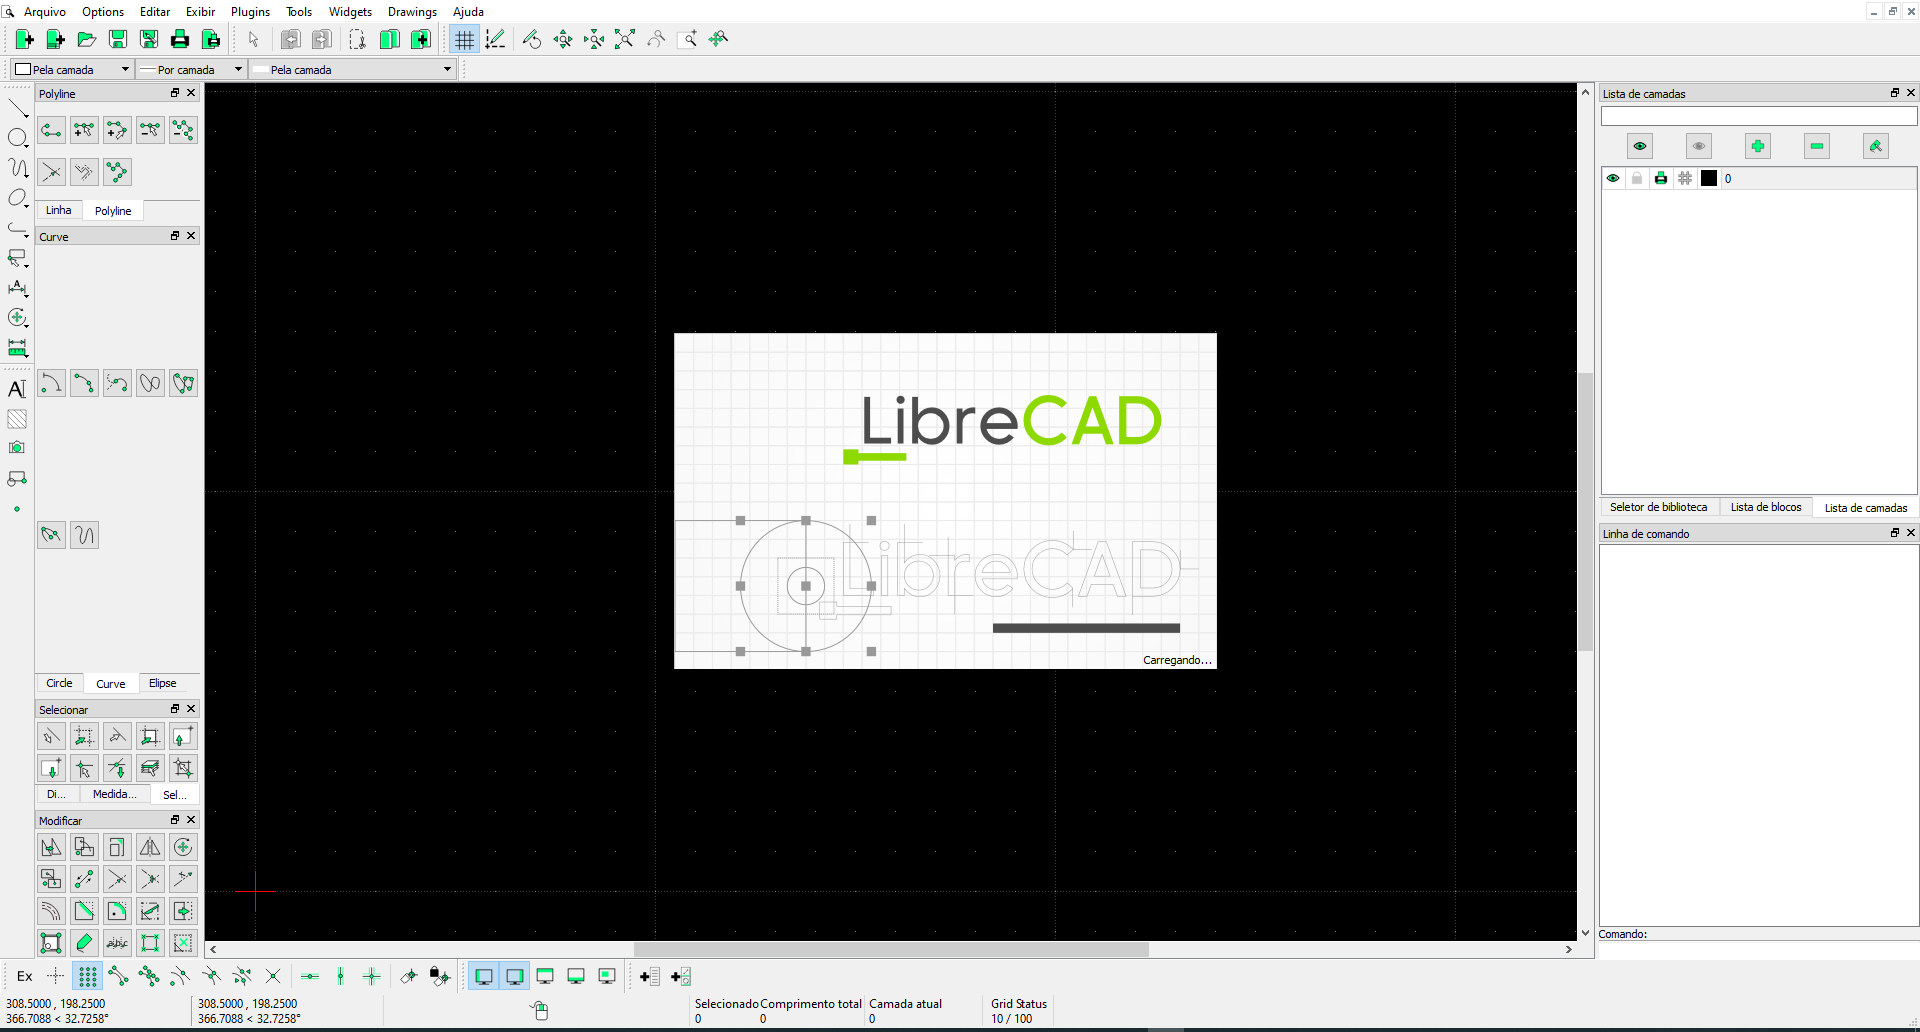 LibreCAD has a new release candidate for the version 2.2.0